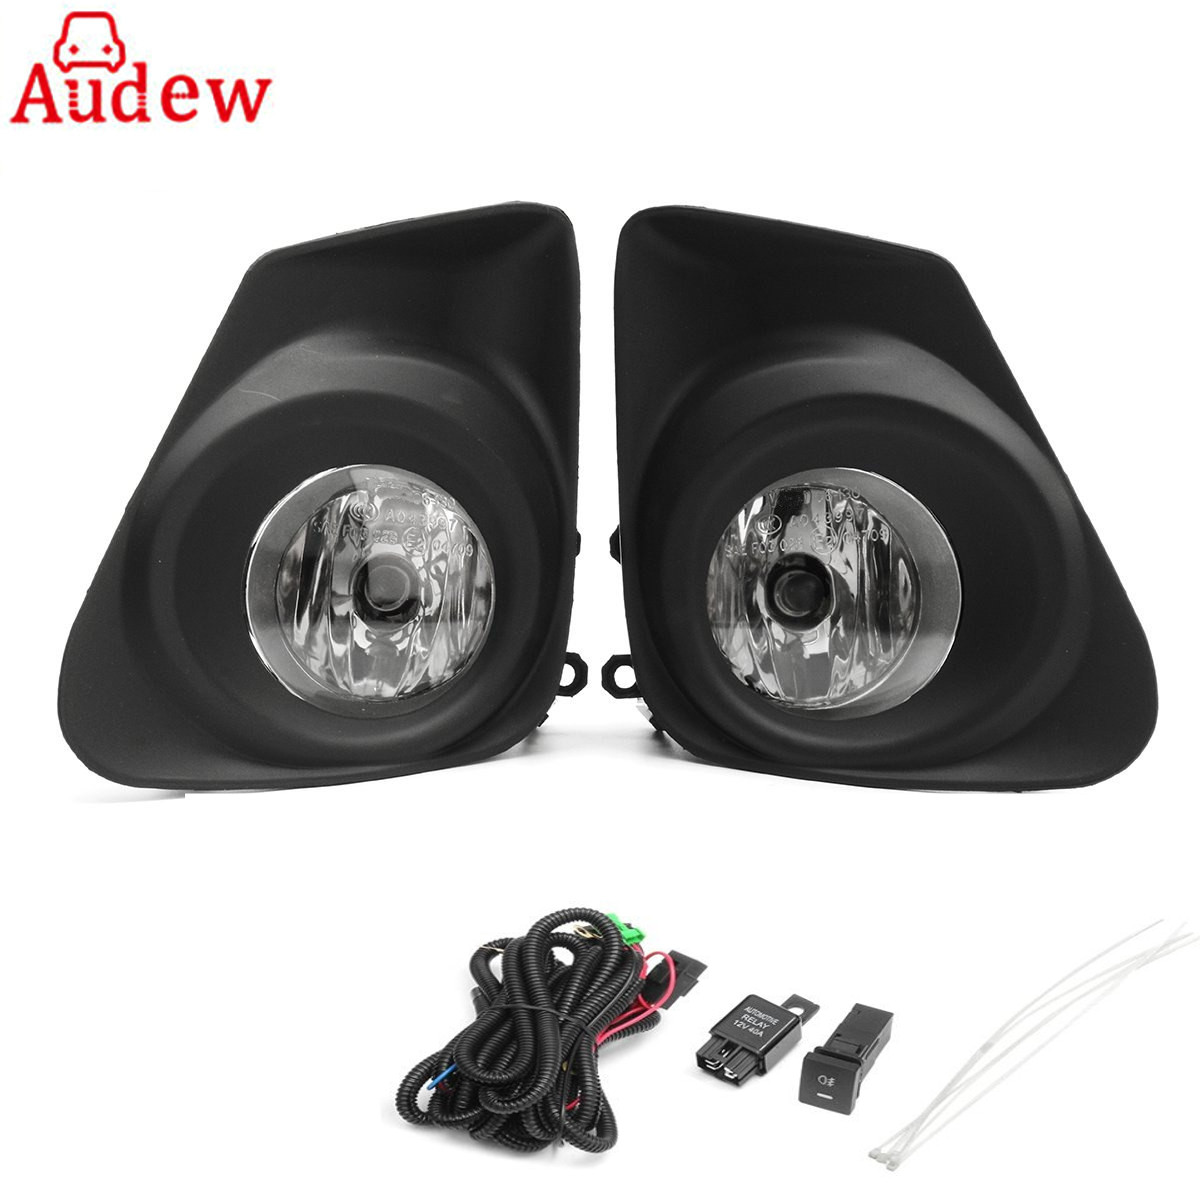 2pcs h11 car front bumper fog lights lamp with h11bulb switch 2pcs grille cover left right for